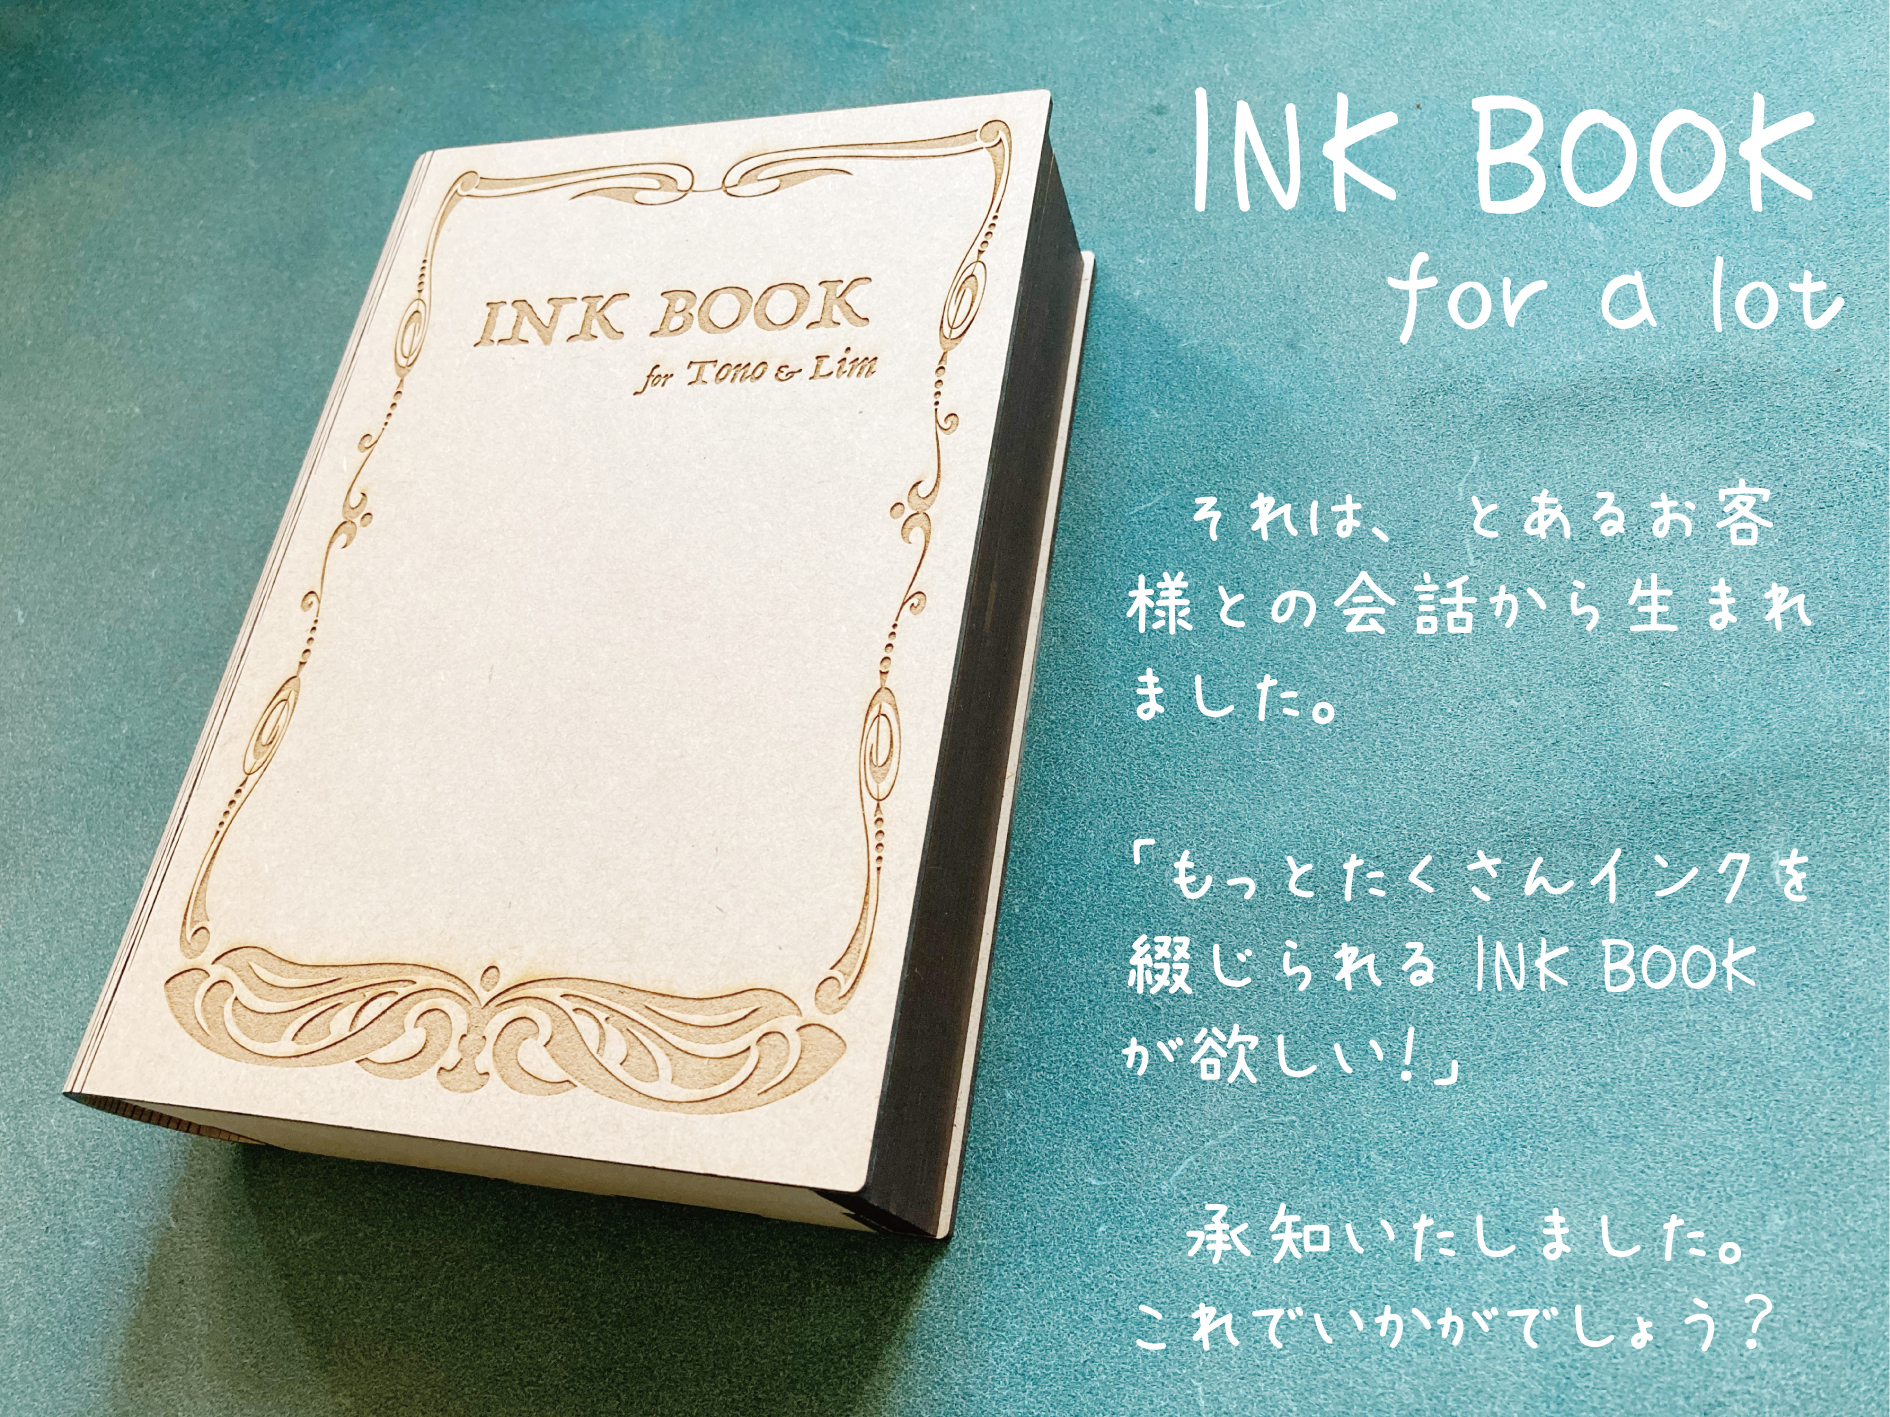 INK BOOK for nine T(Tono & Lims 30mlボトル対応)